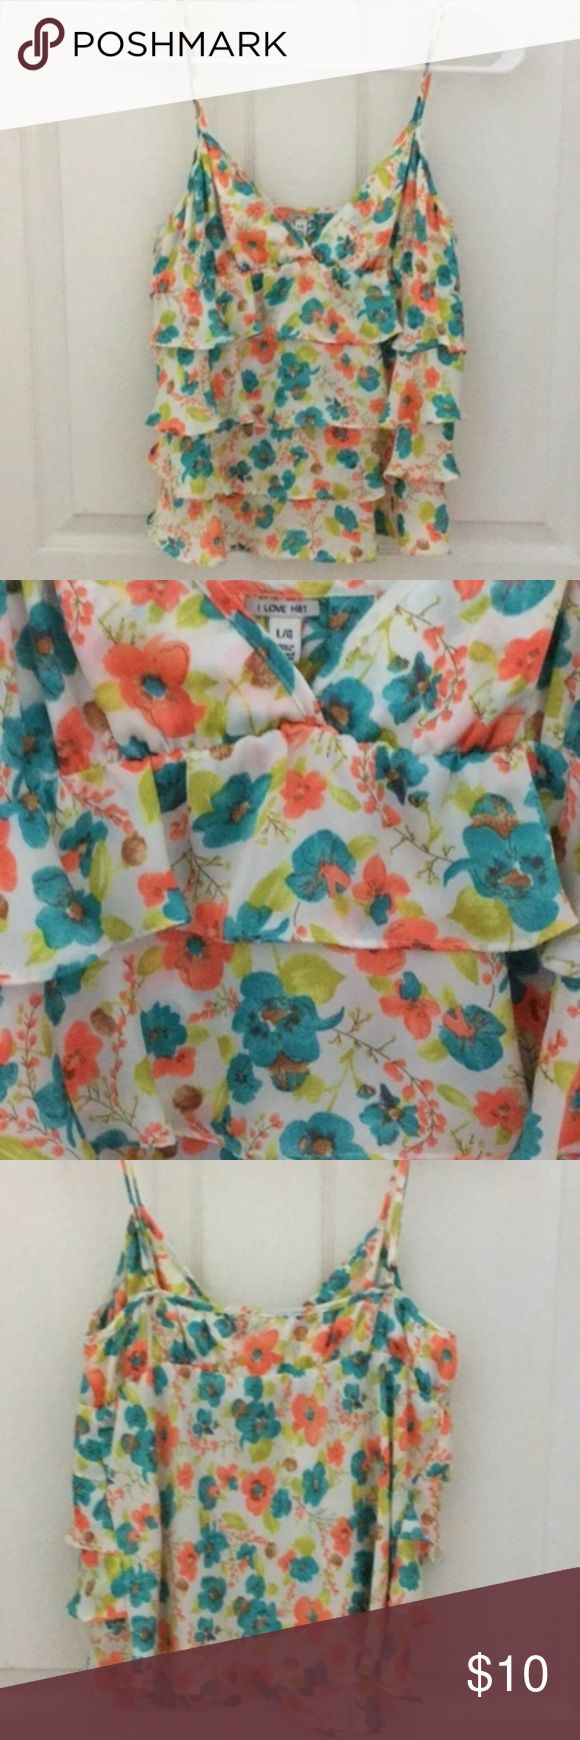 Floral Spaghetti Strap Top It is a floral v spaghetti top with adjustable strap. I never worn this top and it is still in a very good condition. No tag attached. Perfect for summer #floral #ruffle #forever21 #spaghetti-strap Tops